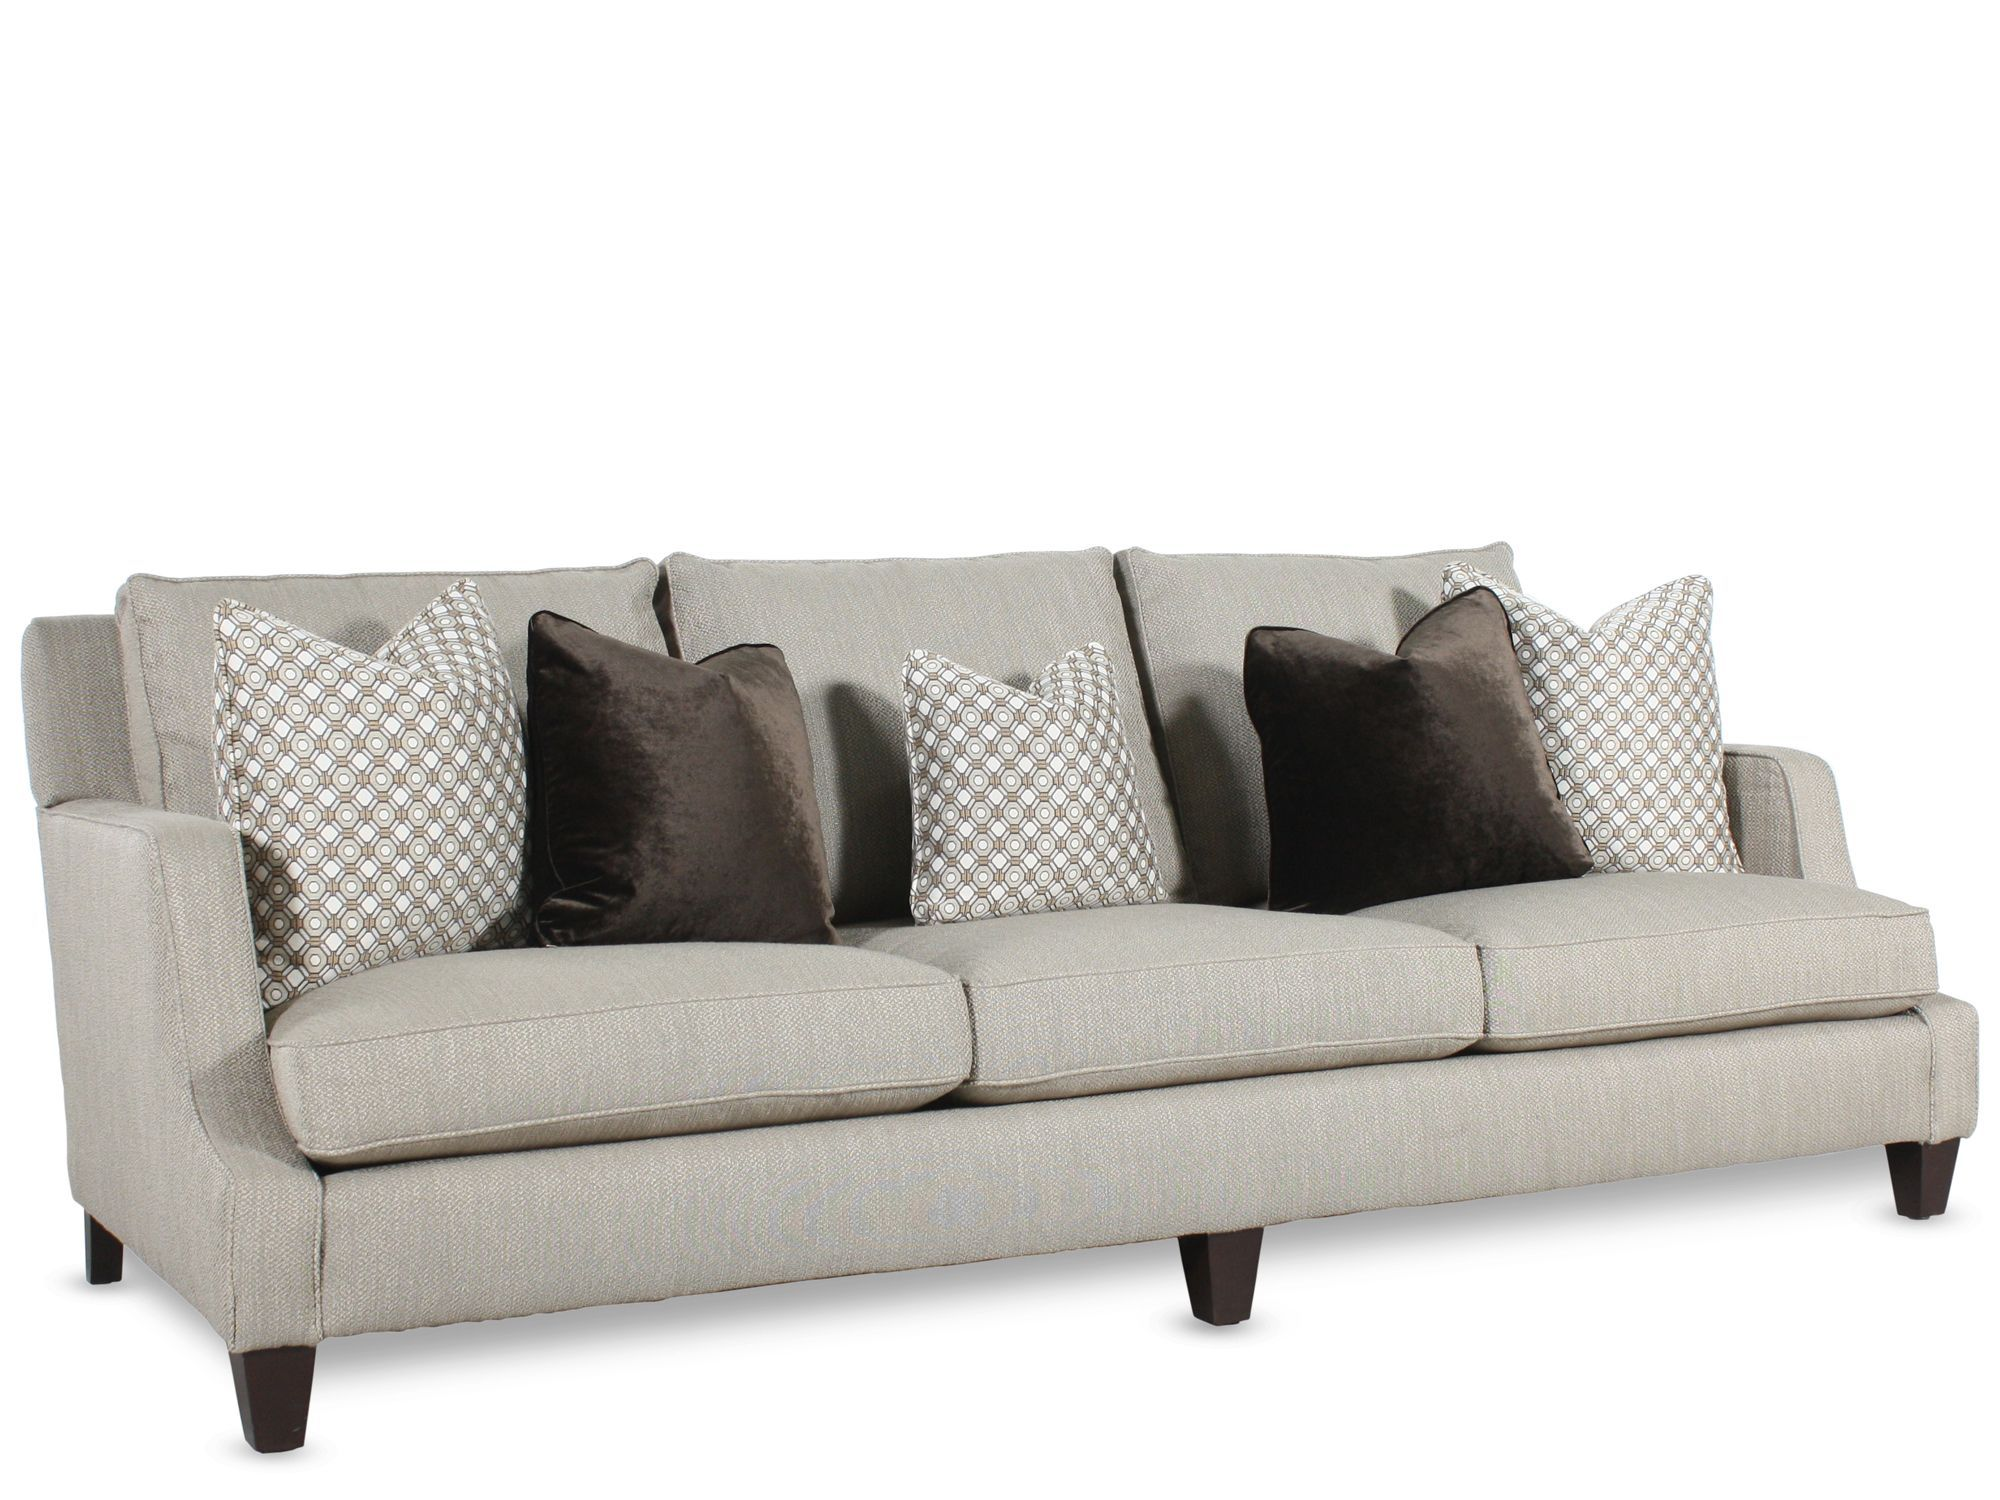 Bernhardt Jackie Sofa Mathis Brothers Ideas For The House Pinterest Living Room Furniture